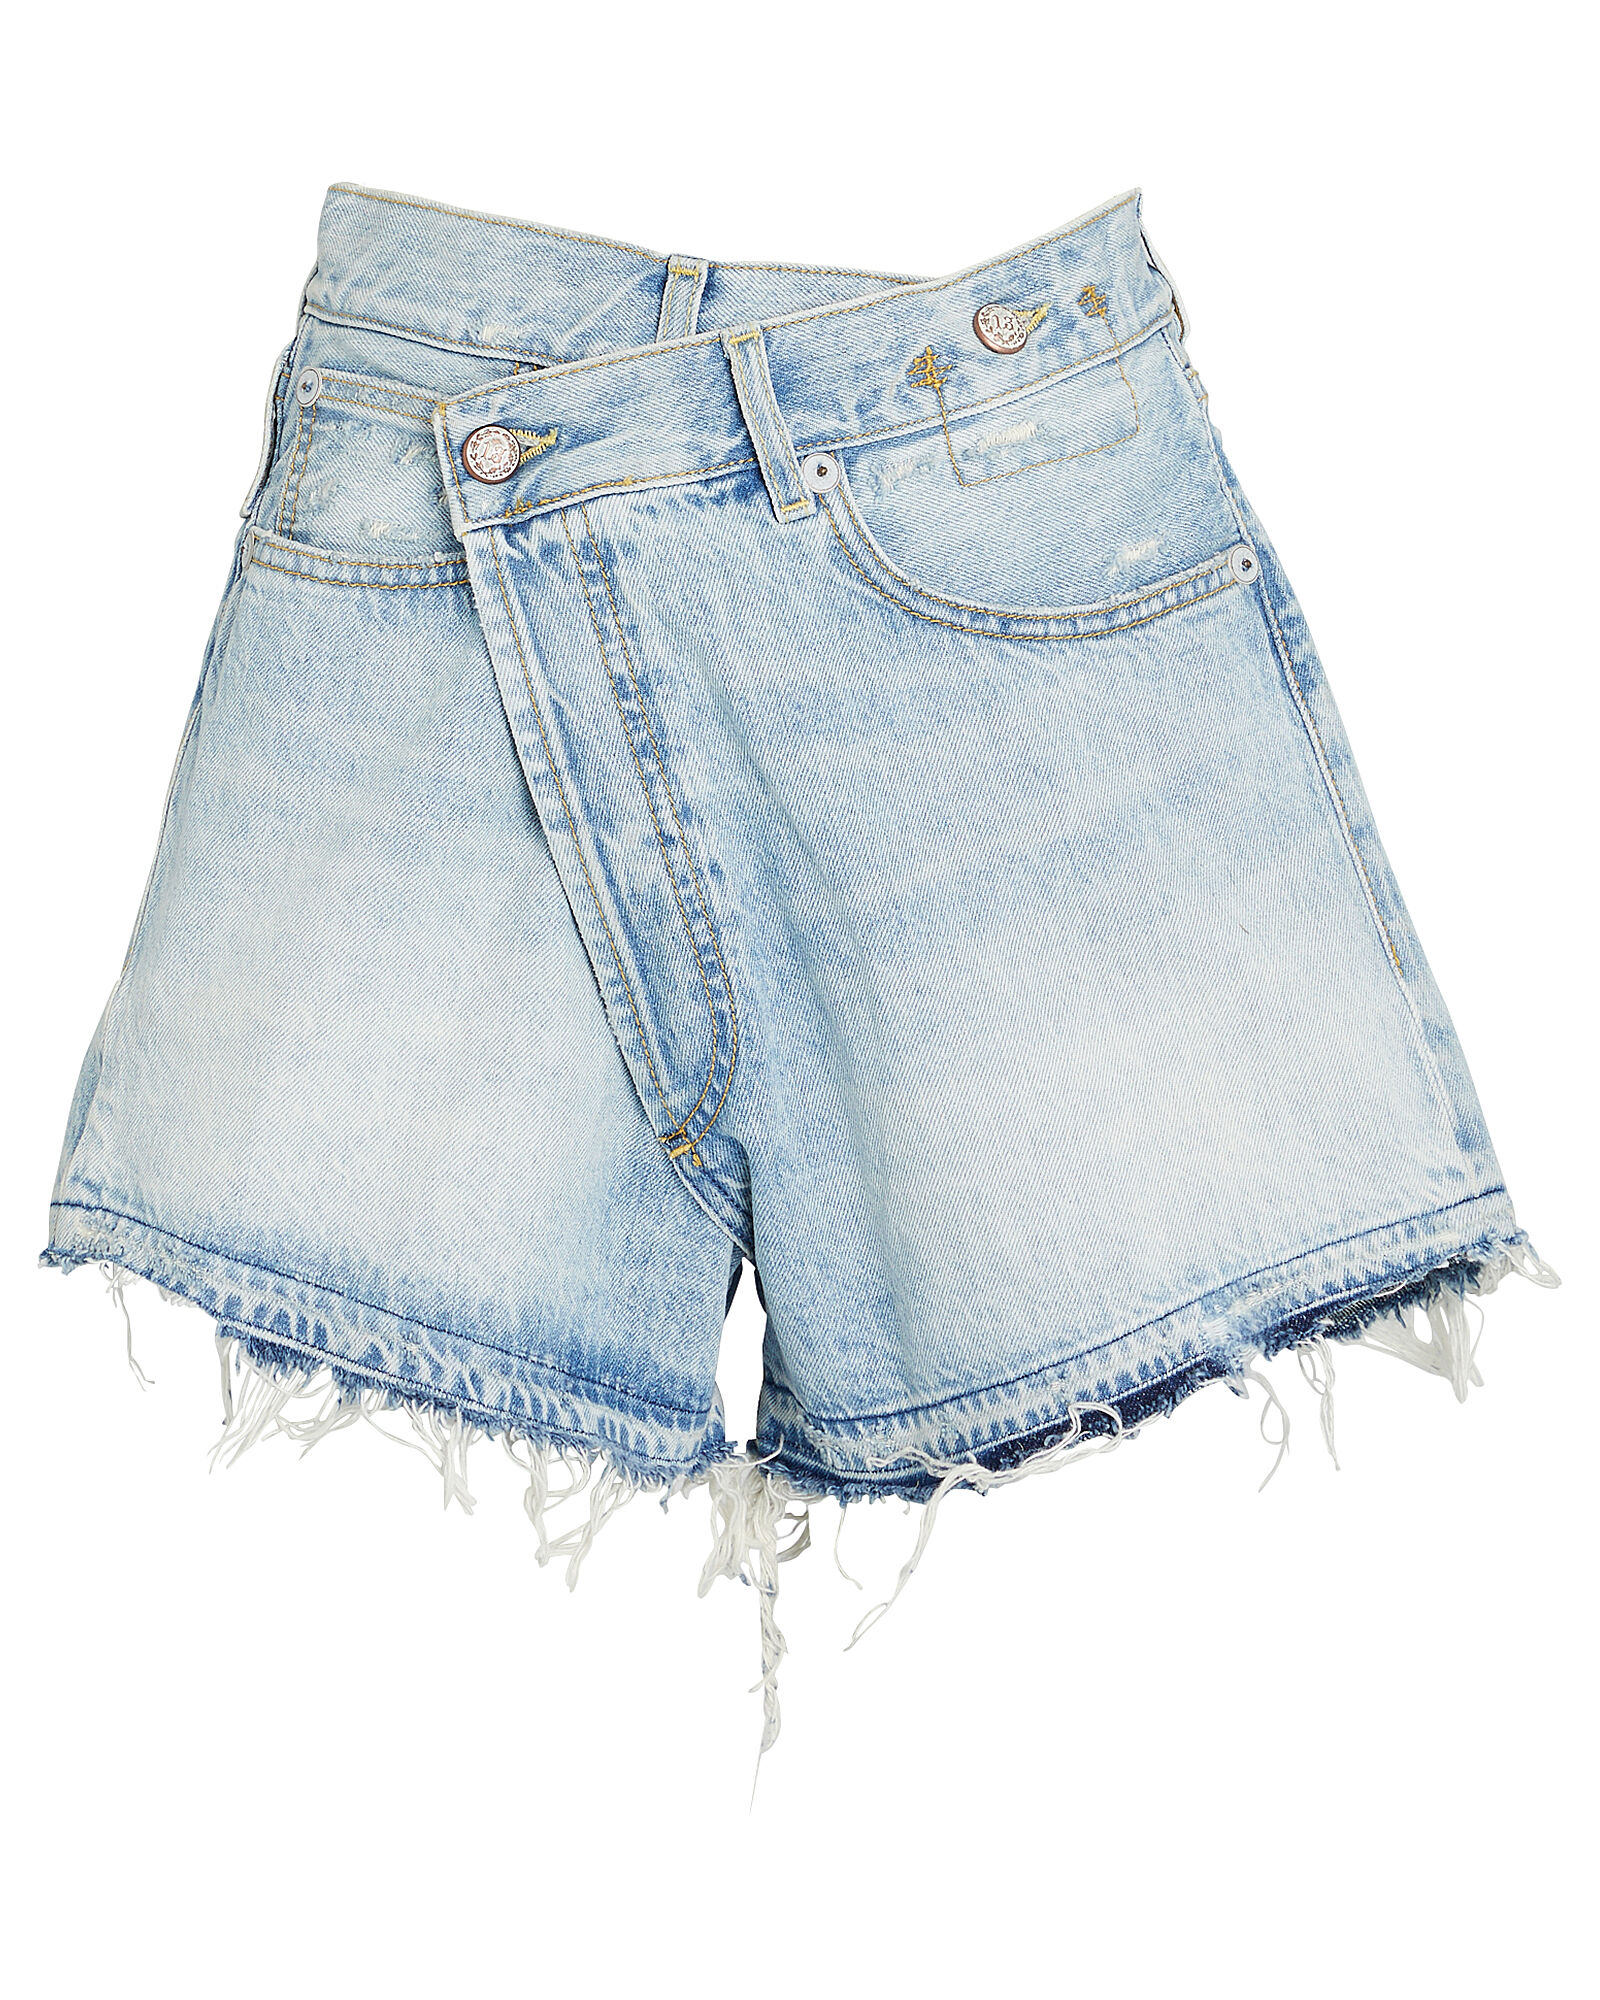 Crossover Distressed Denim Shorts, TILLY, hi-res